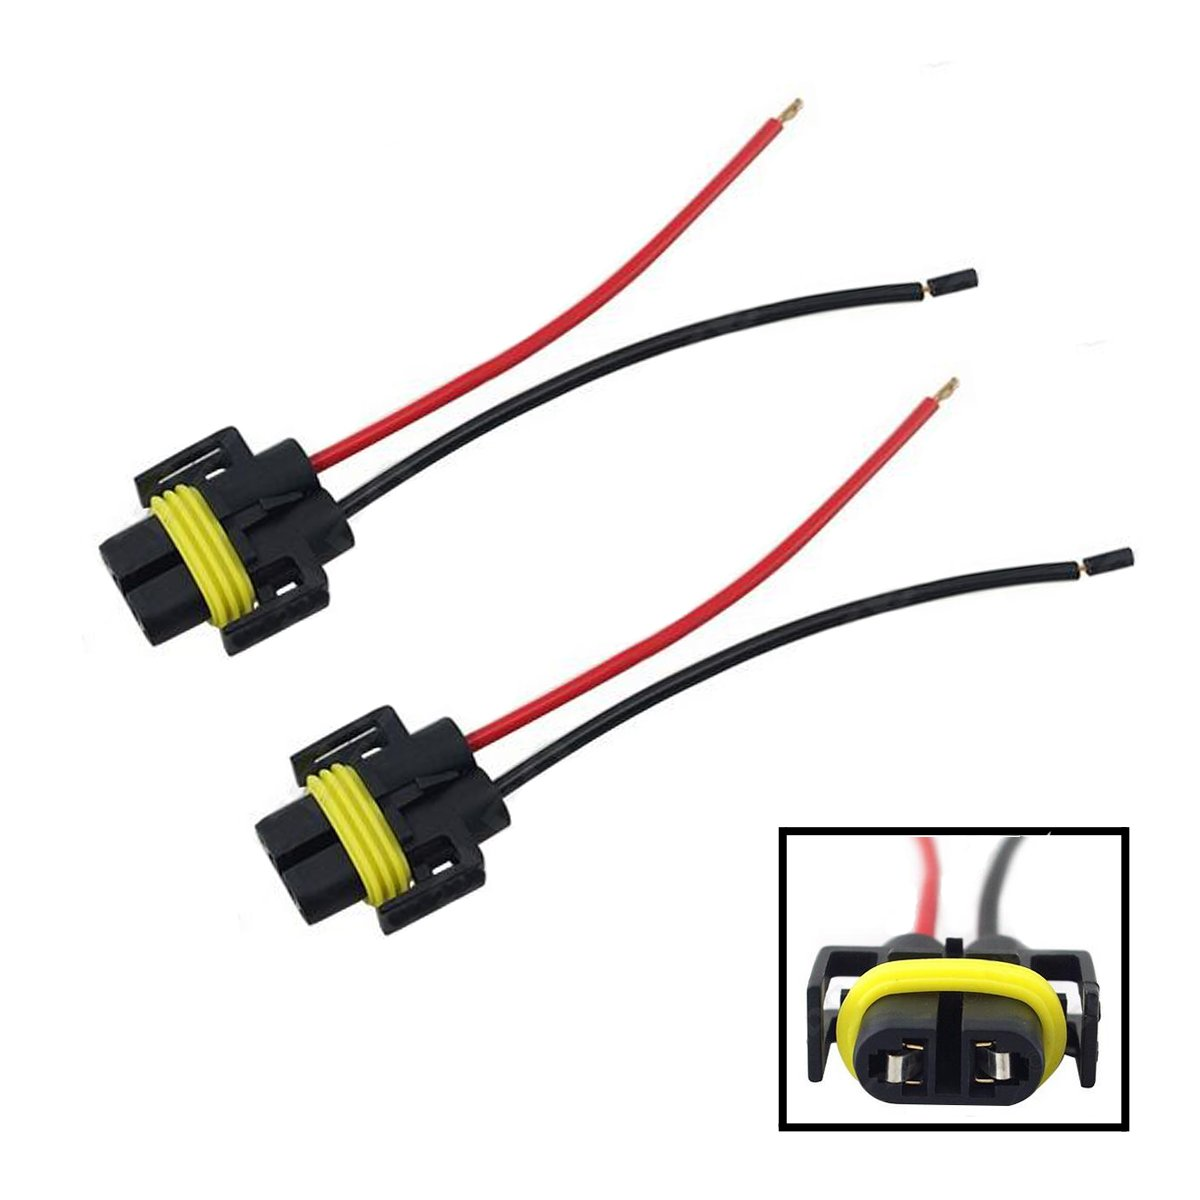 iBrightstar H11 H9 H8 Female Adapter Wiring Harness Sockets Wire For Headlights or Fog Lights